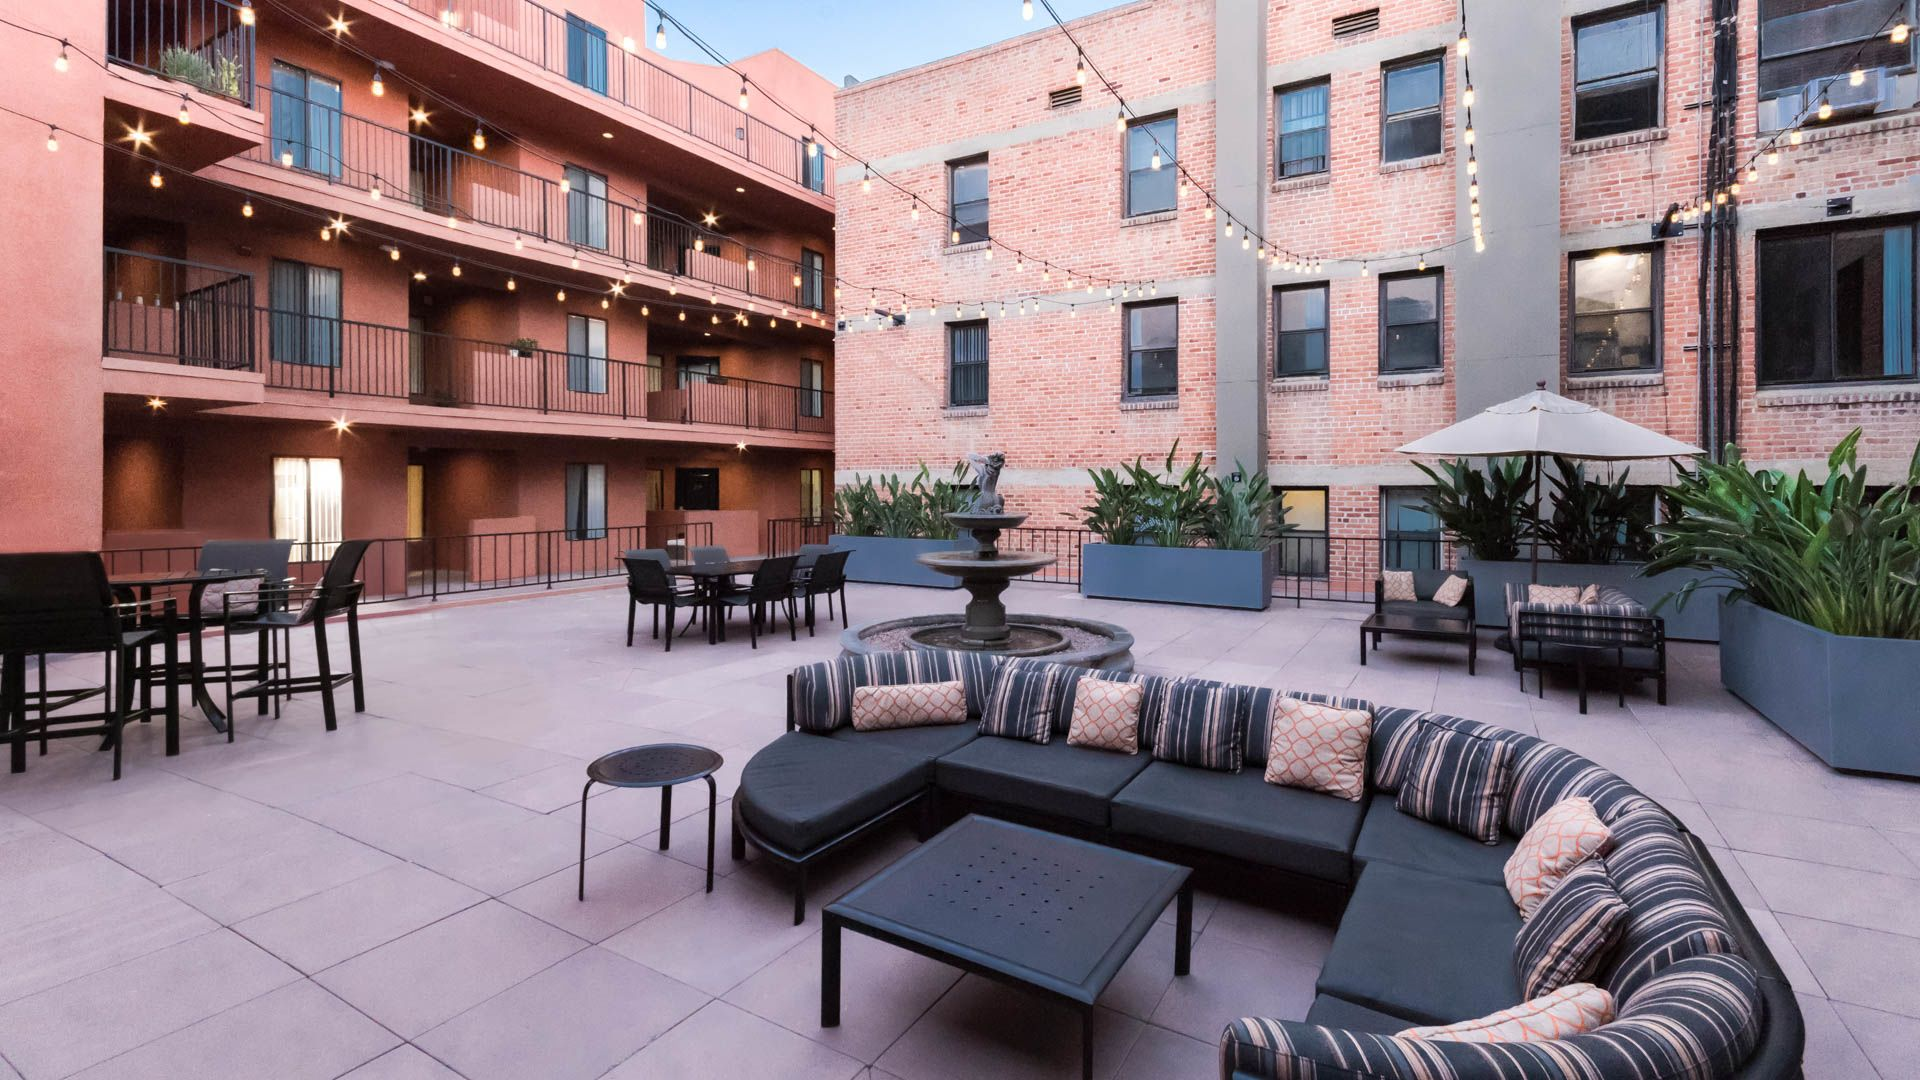 Vintage at 425 Broadway Apartments - Courtyard